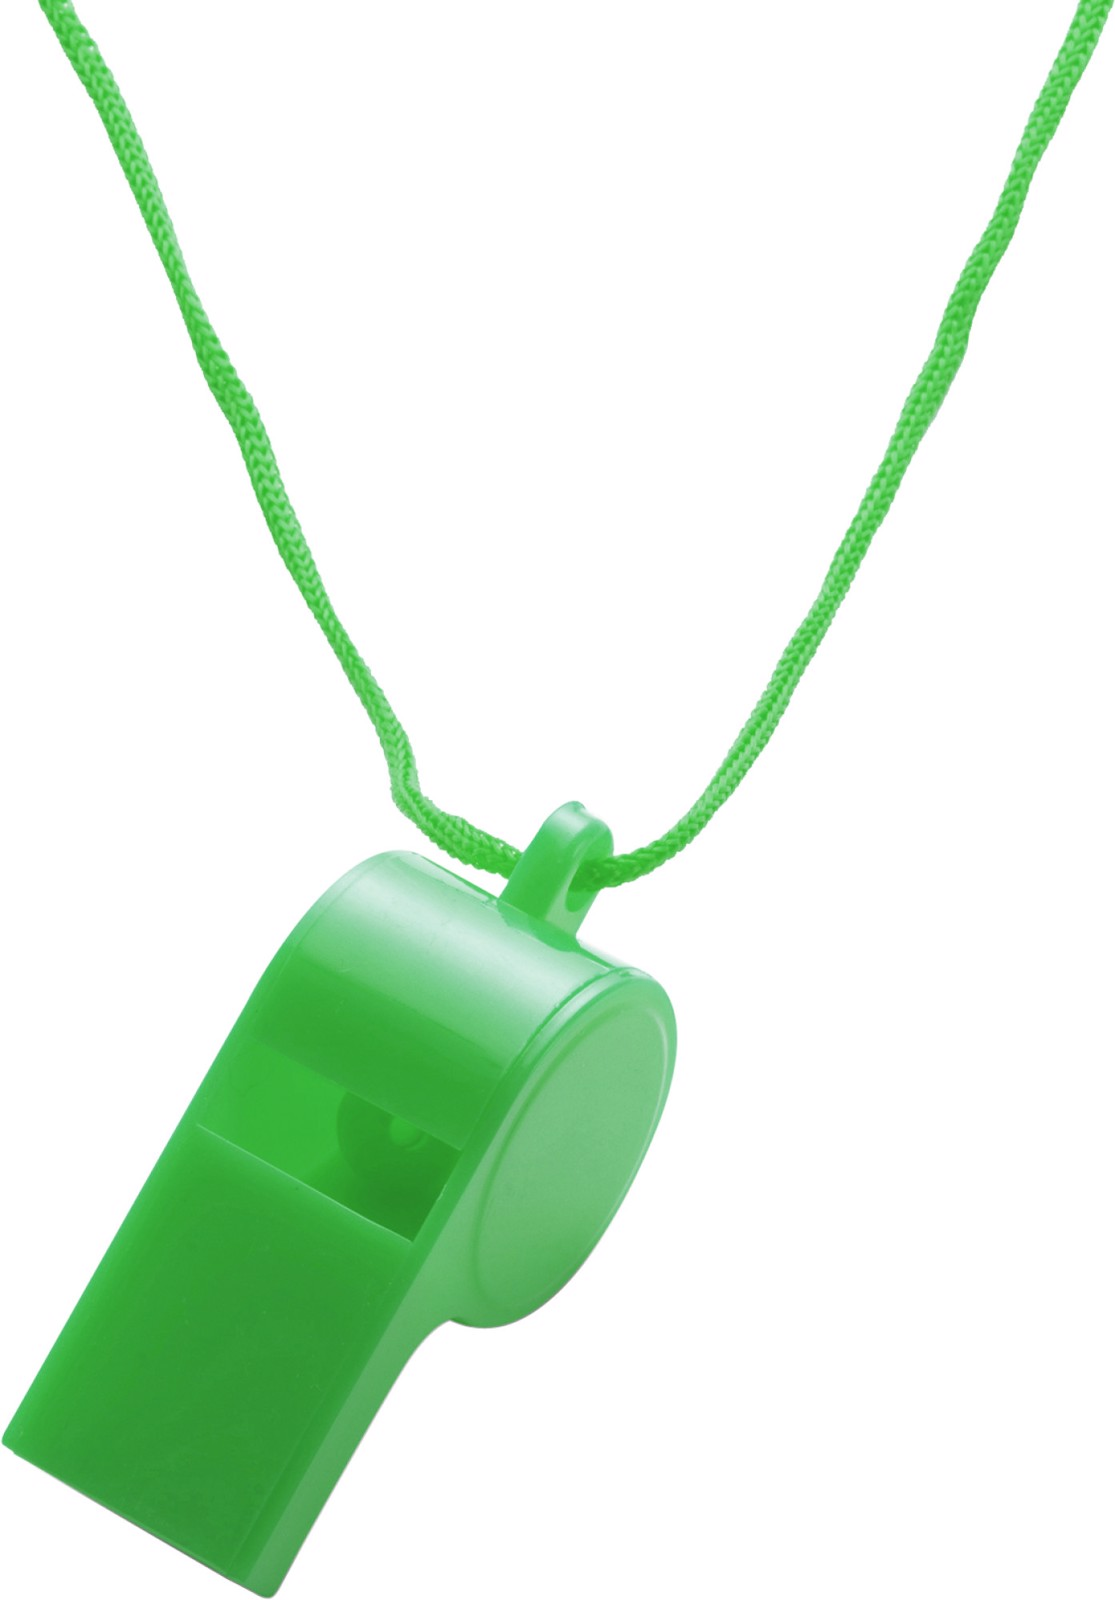 PS whistle - Green